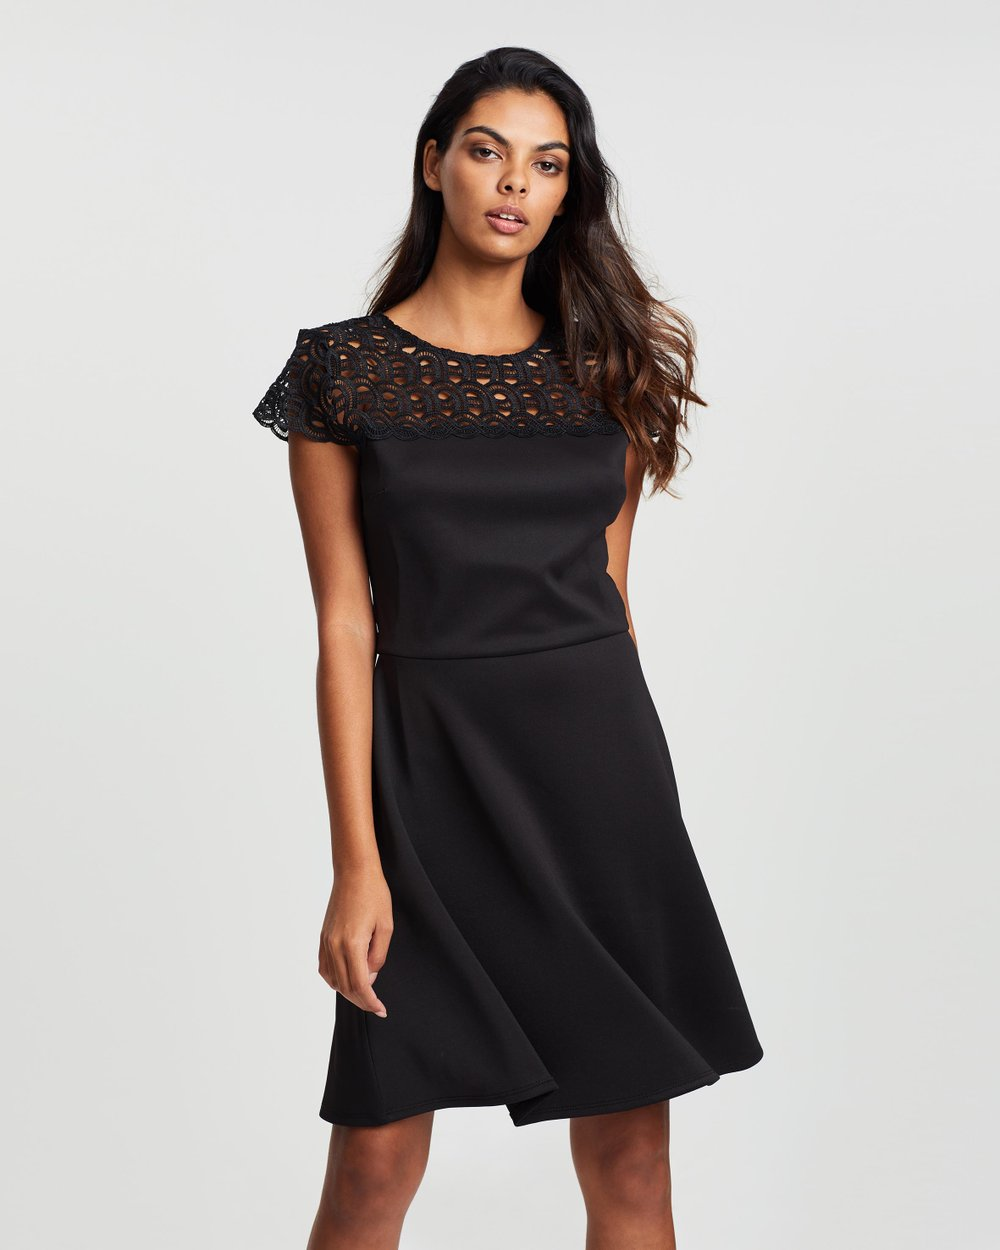 45d387716a8d Lace Top Skater Dress by Dorothy Perkins Online